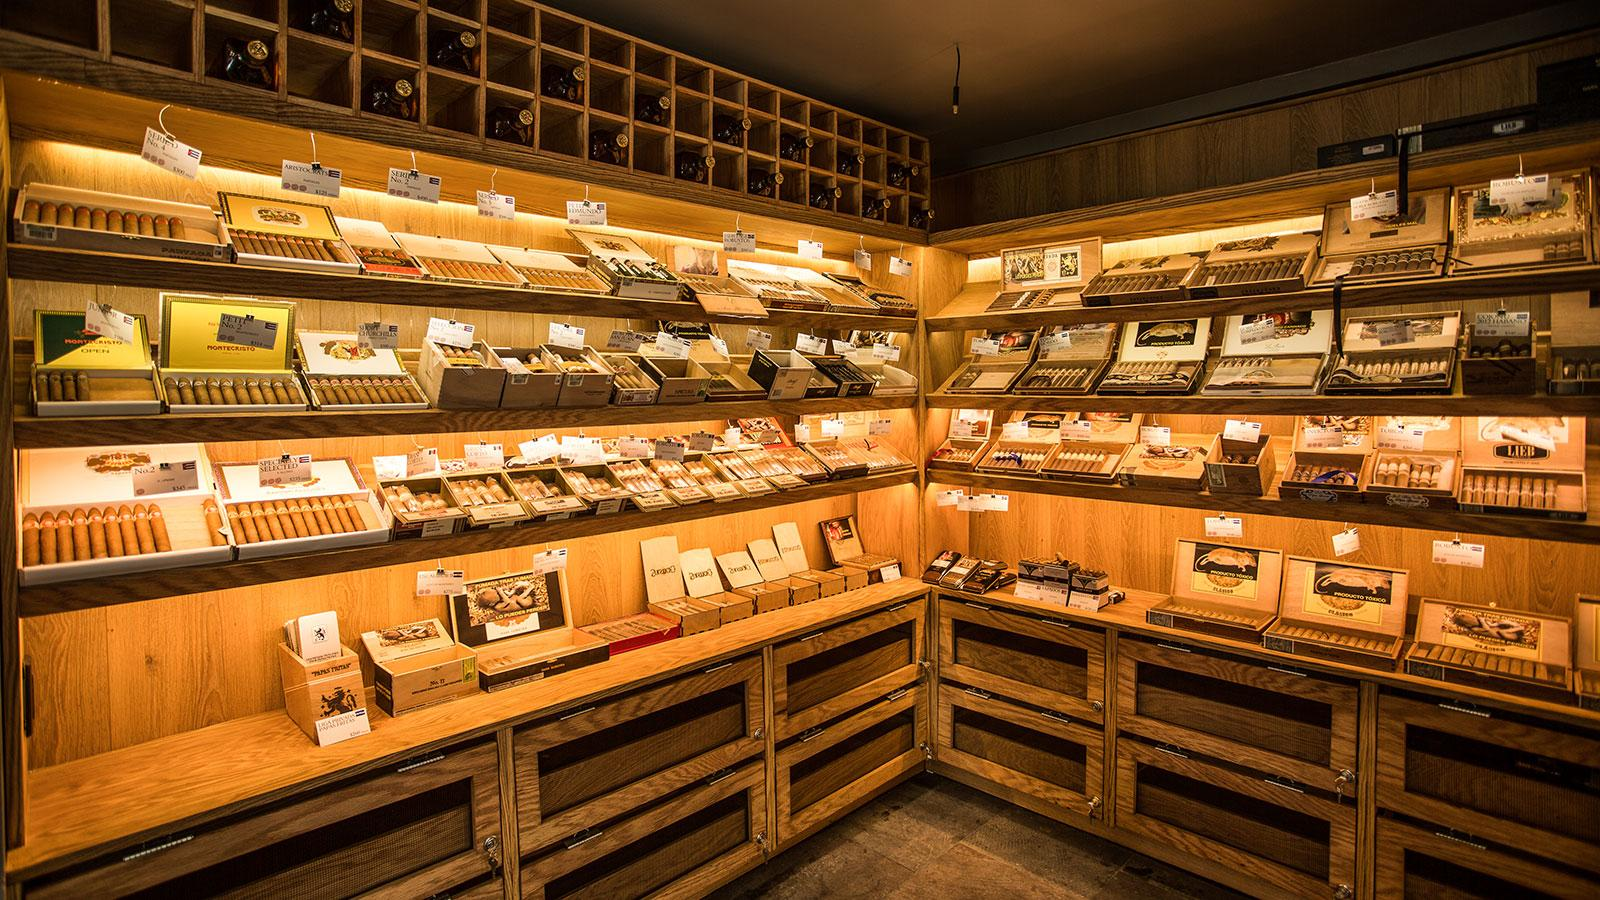 The walk-in humidor is stocked with a variety of Cuban and non-Cuban cigars.